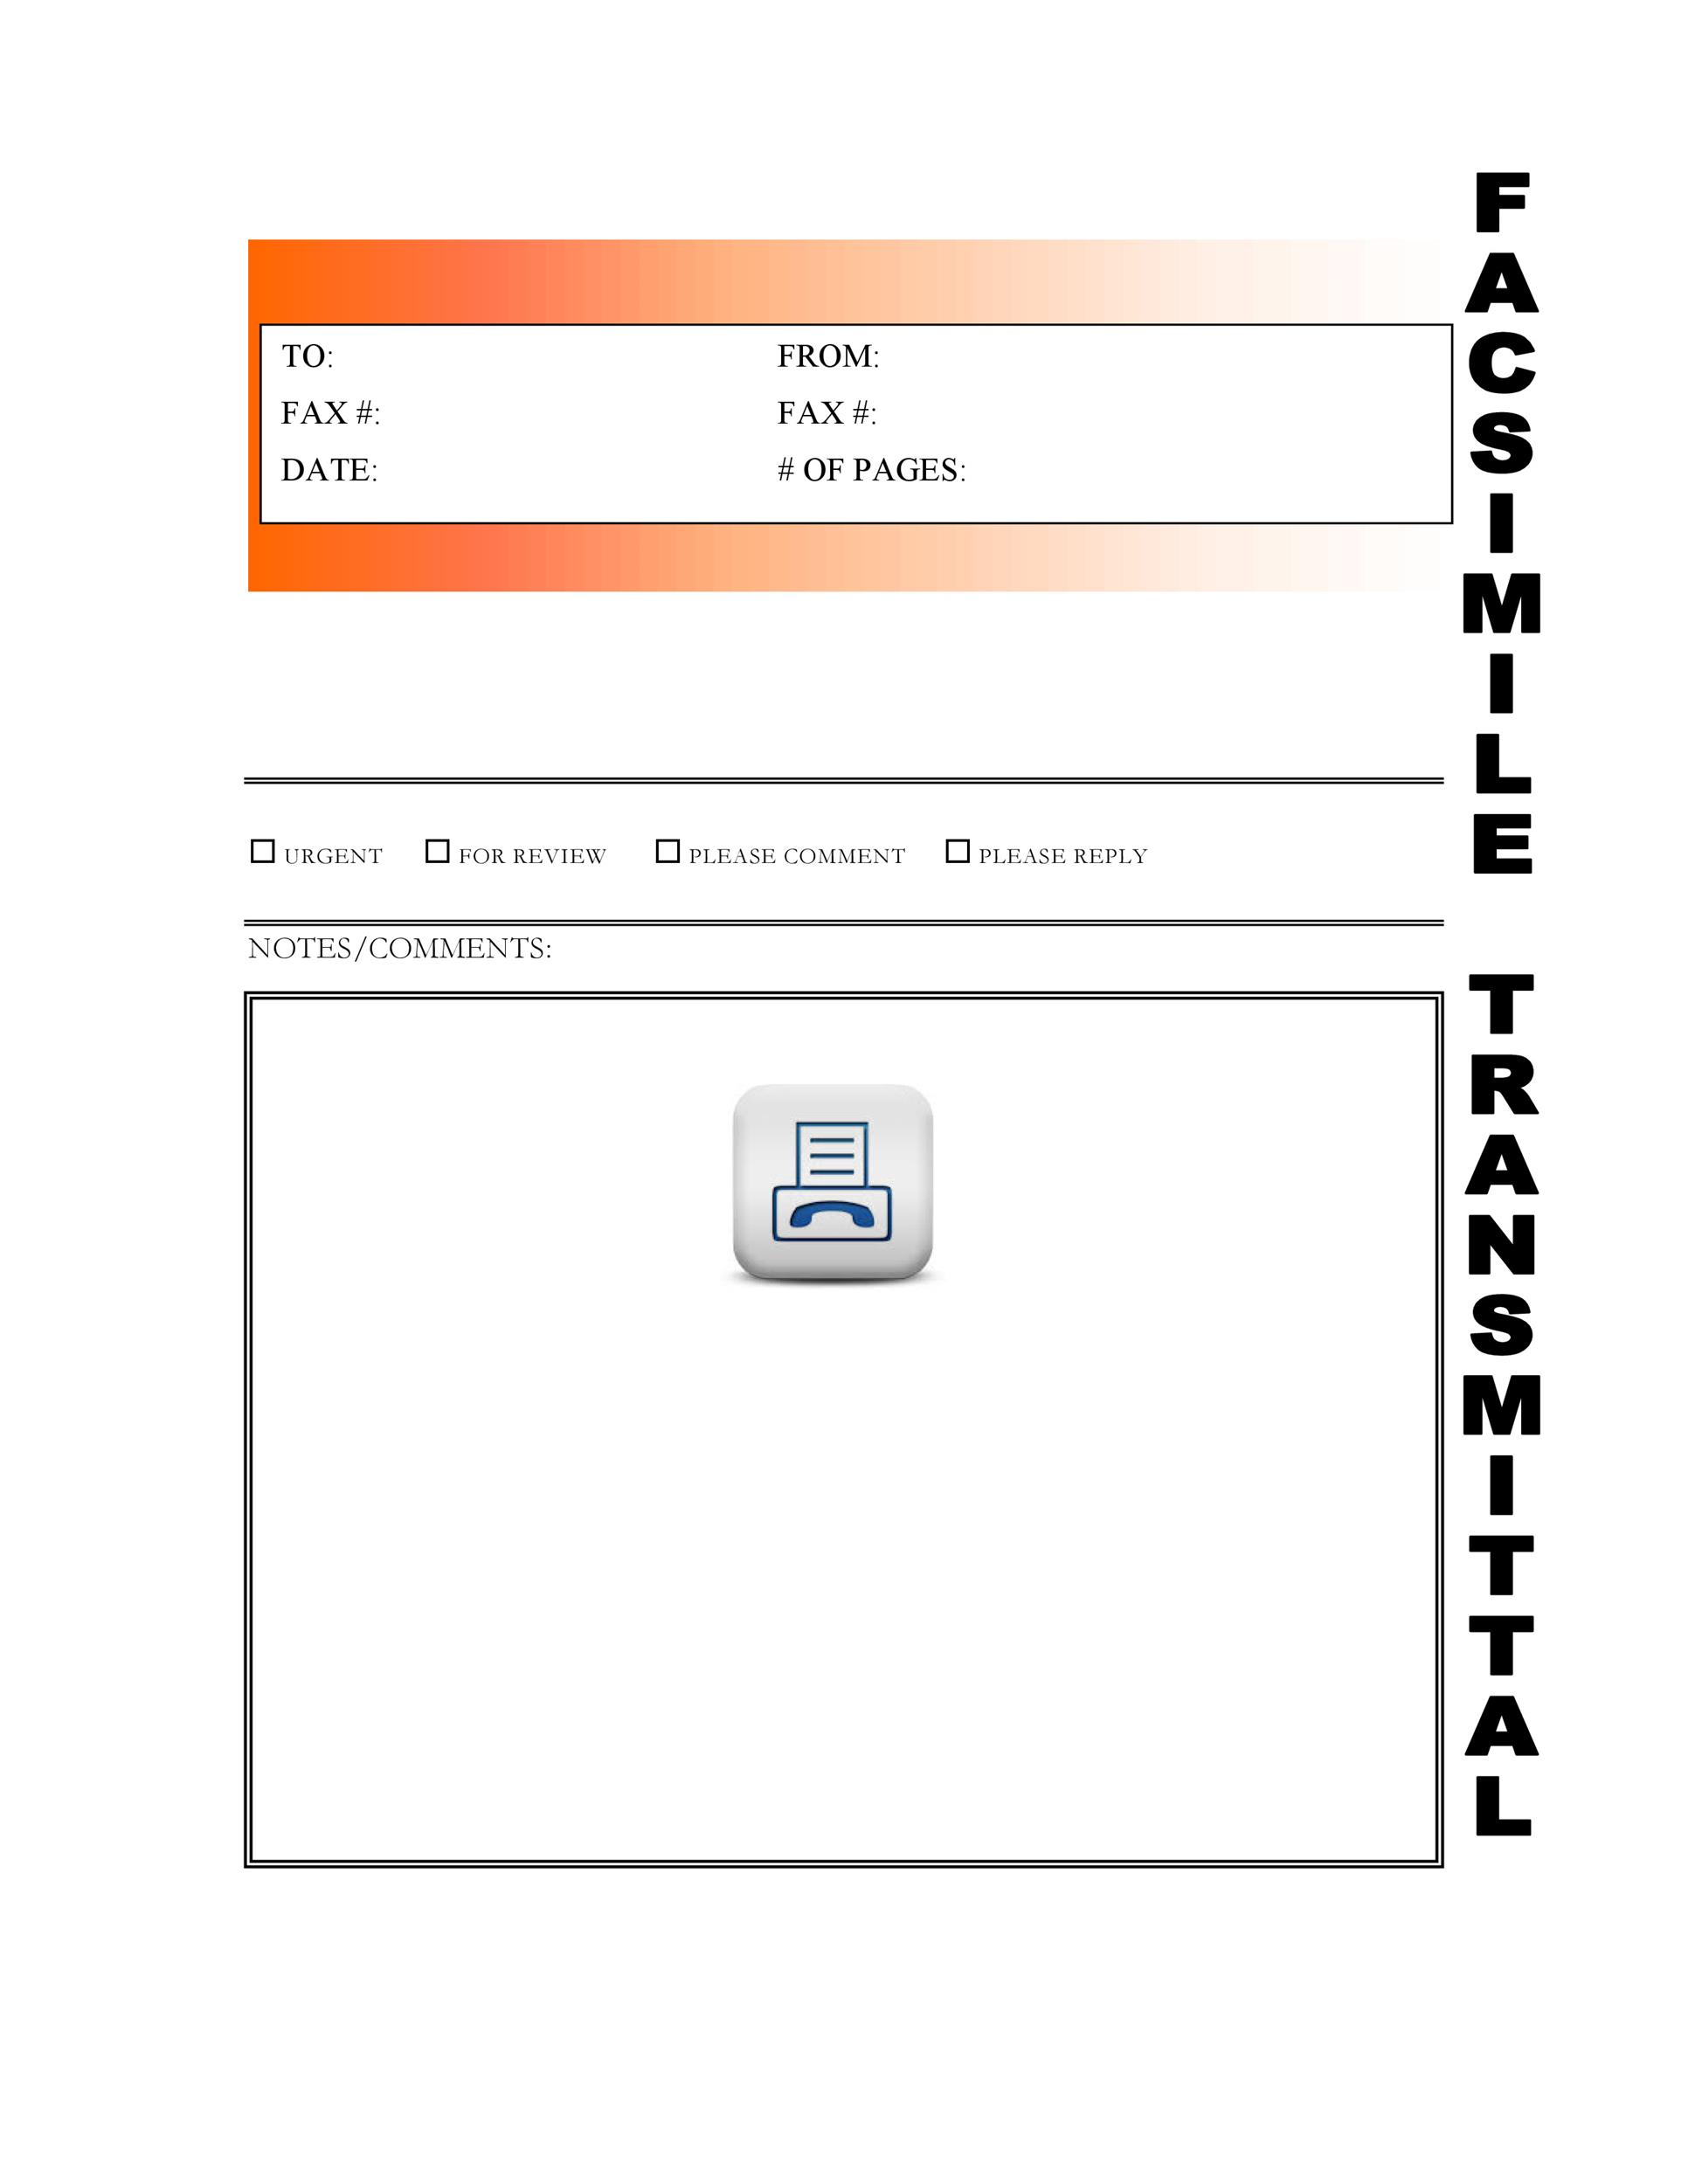 Fax Cover Sheet Template 33